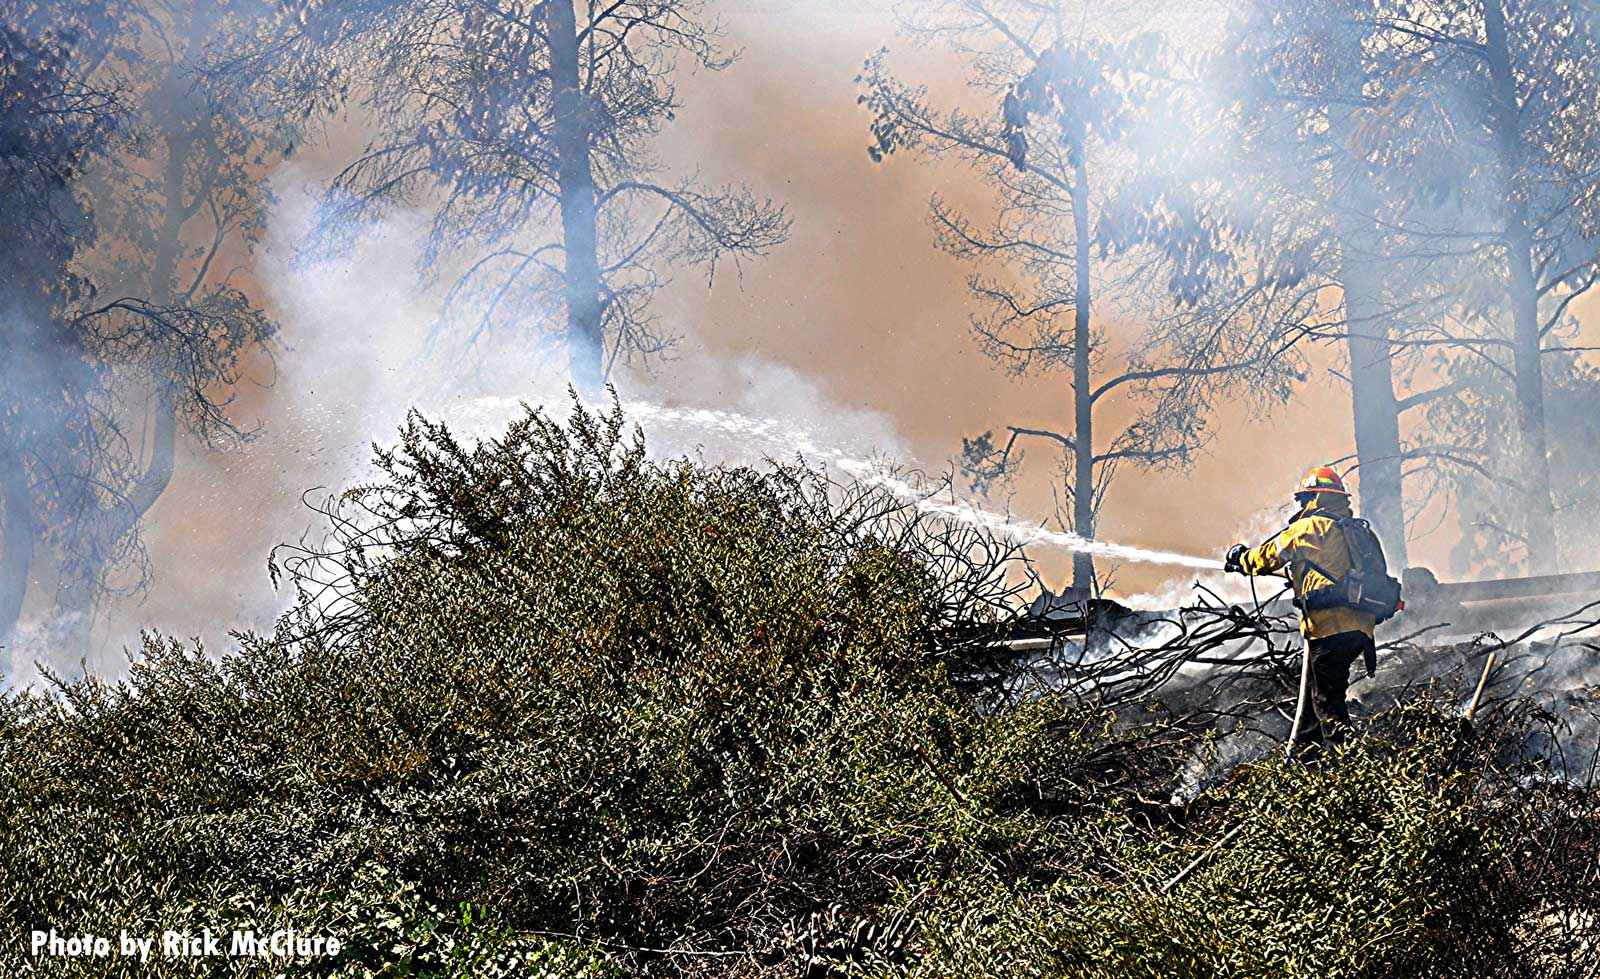 Firefighters apply water at brush fire